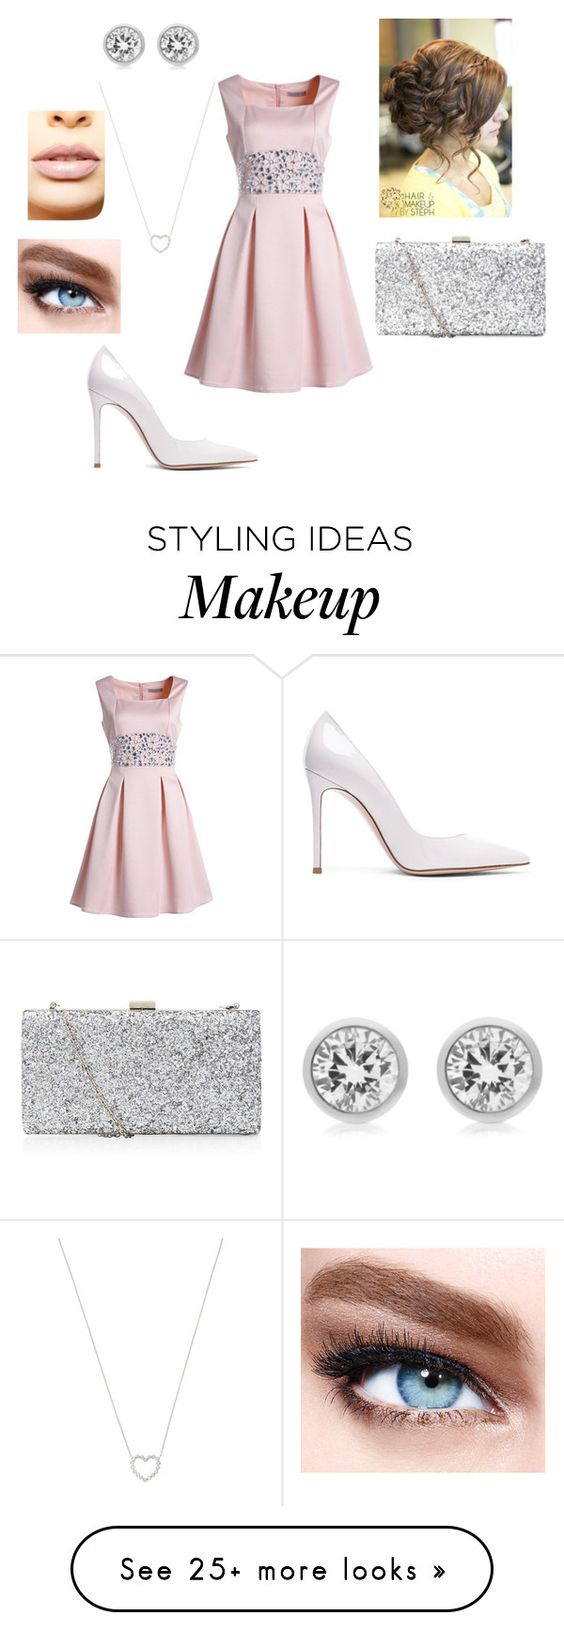 """Untitled #177"" by pieririvasmolina2000 on Polyvore featuring Gianvito Rossi, Tiffany & Co., Michael Kors, Maybelline and LASplash"